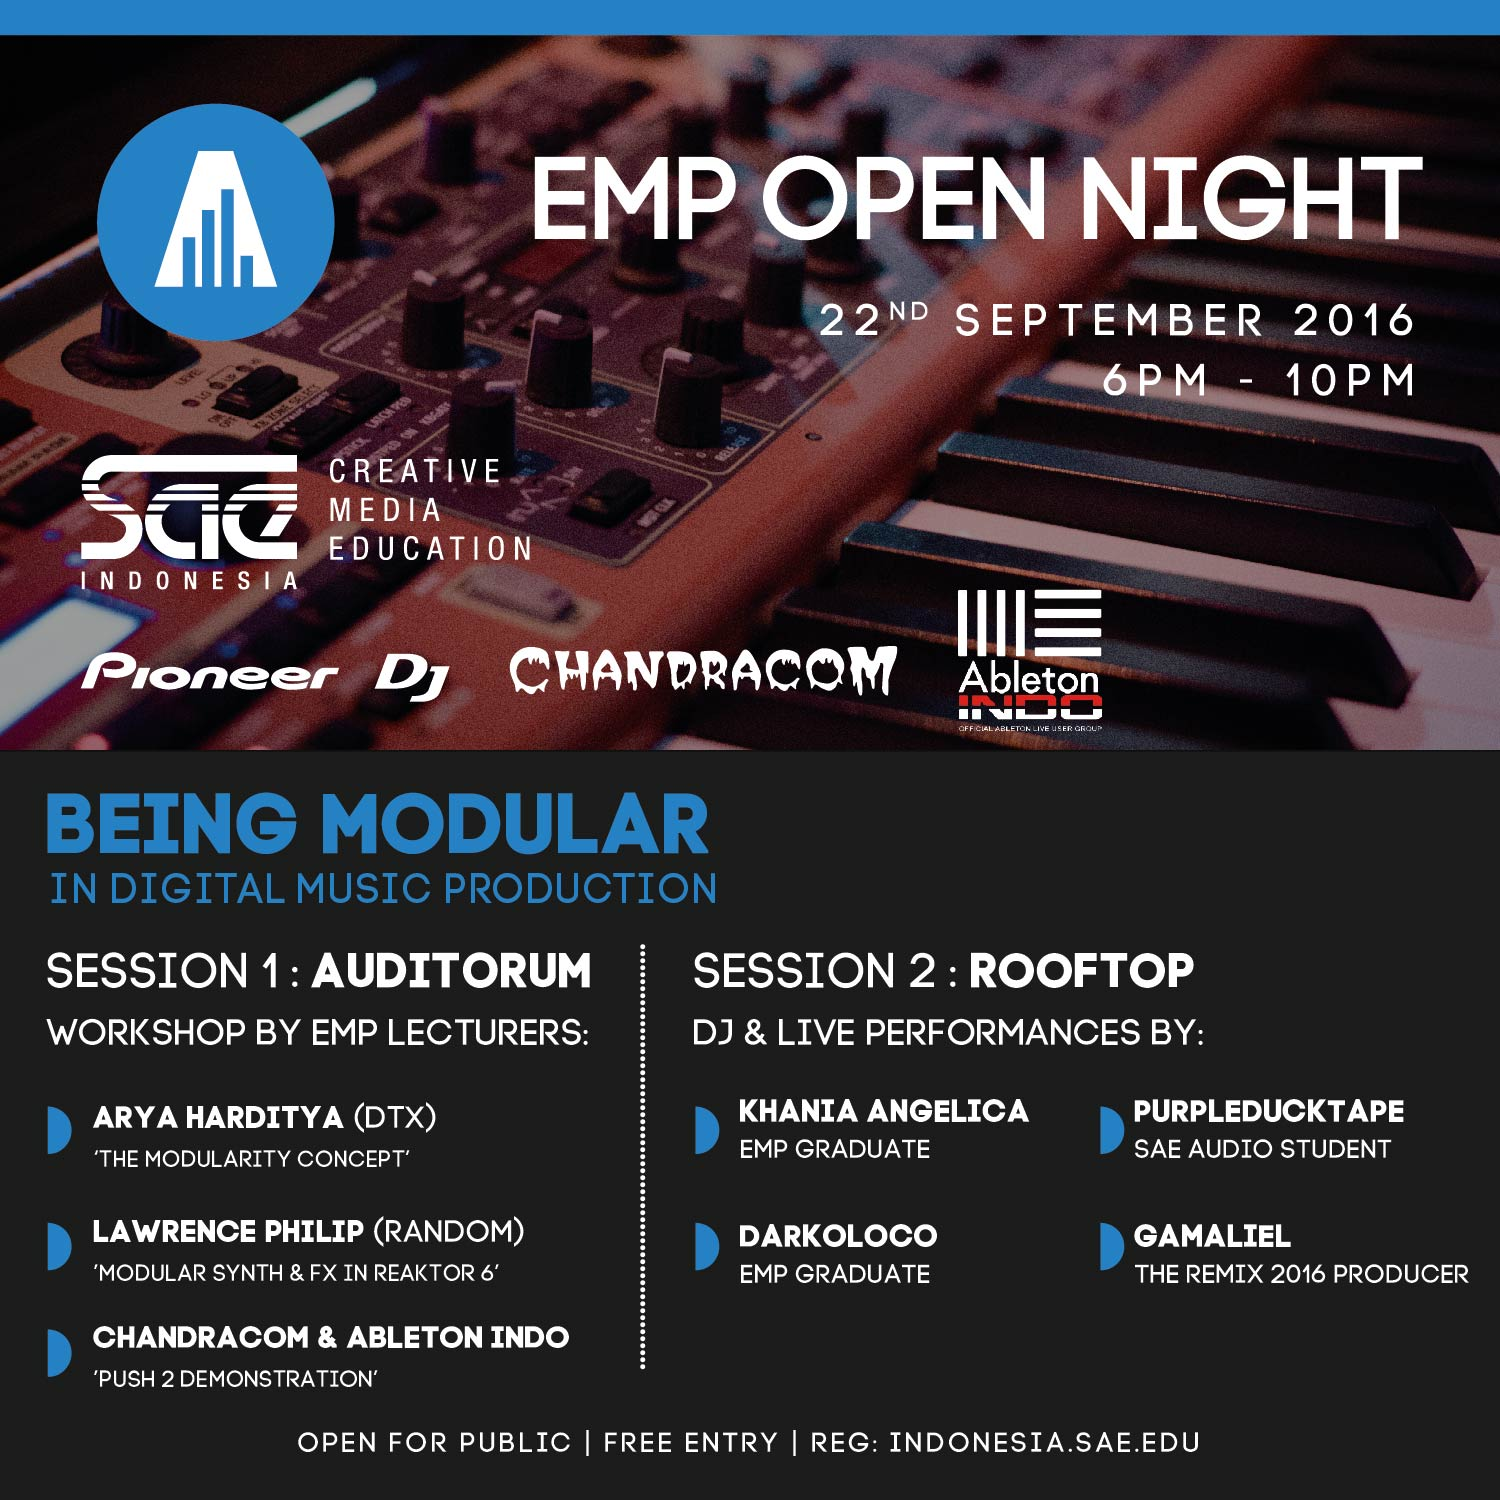 emp-open-night